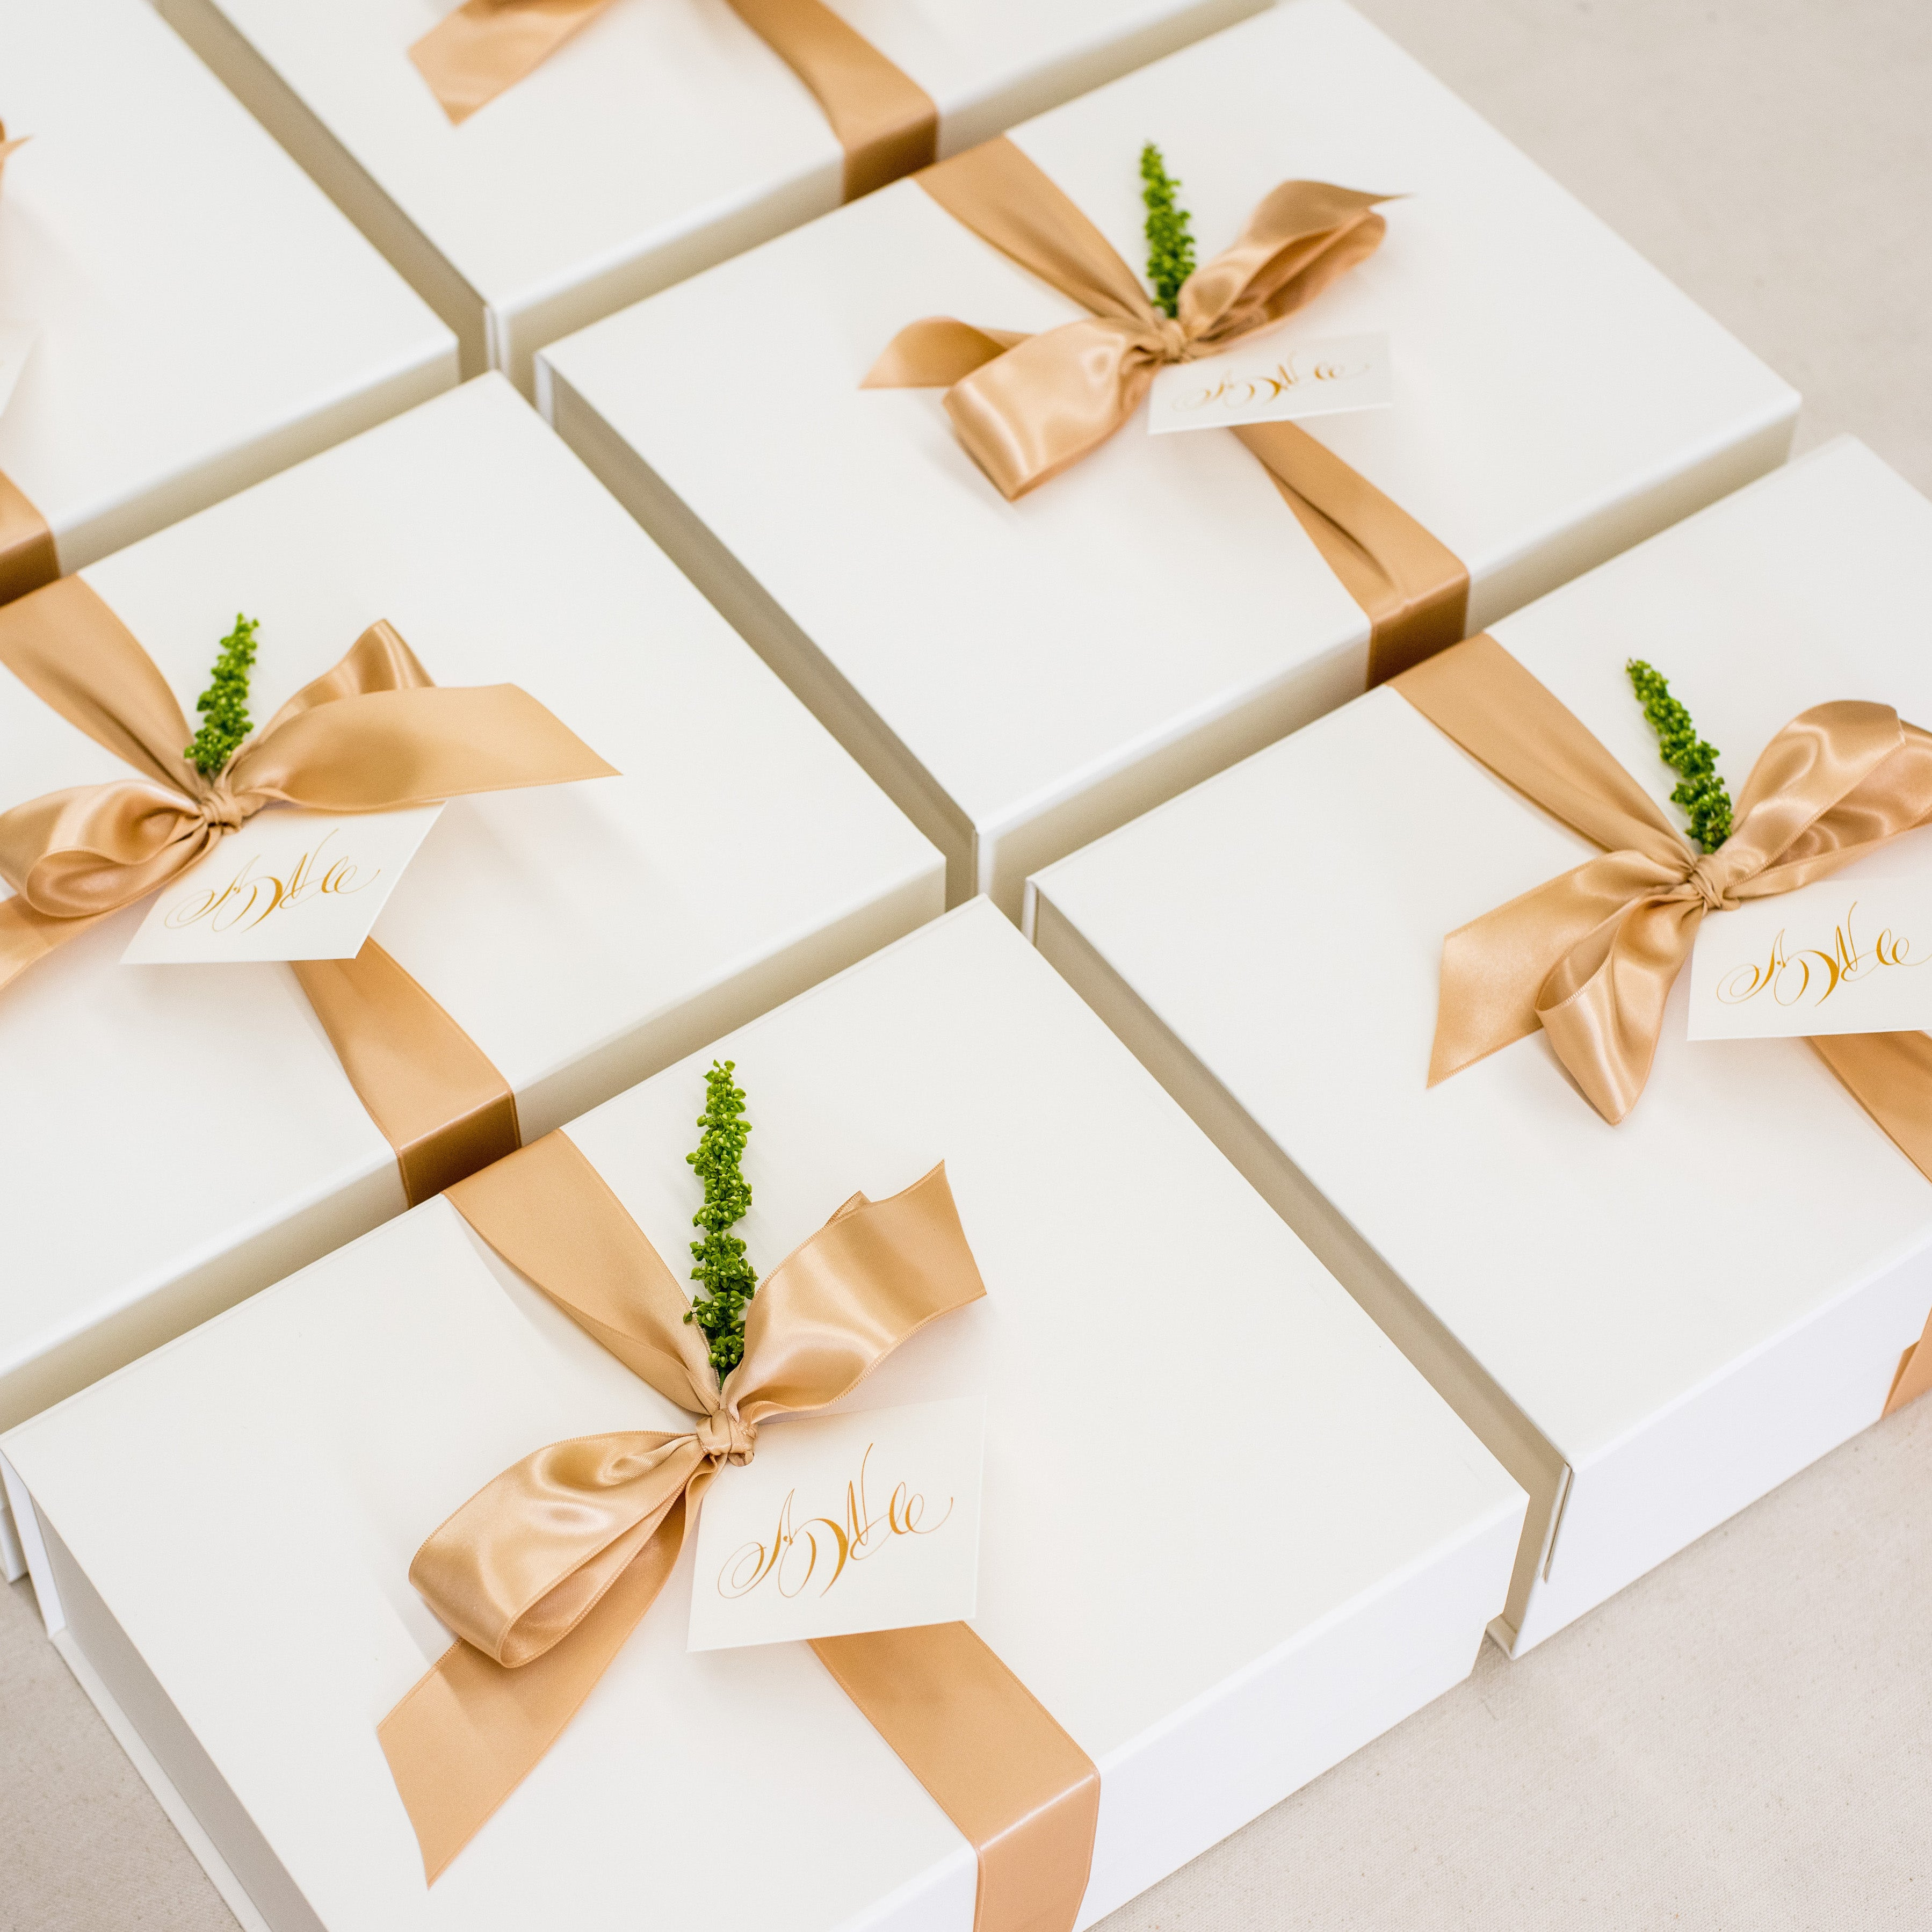 Wedding Guest Gift Ideas: Wedding Gift Boxes For Guests